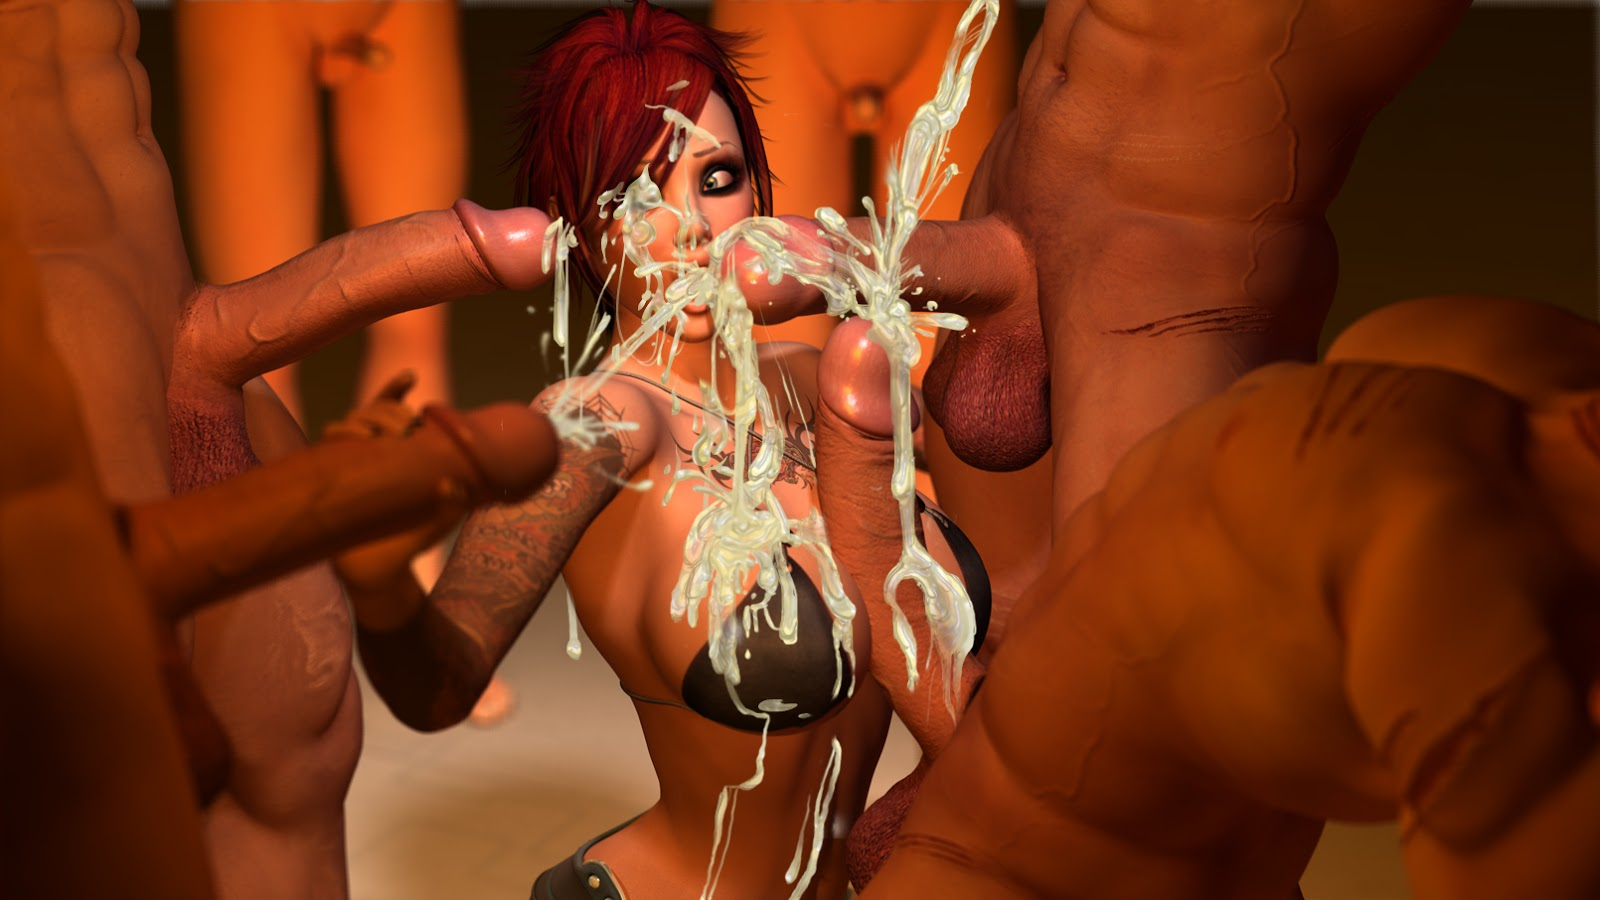 Monstar 3d 3gp porn videos erotic galleries